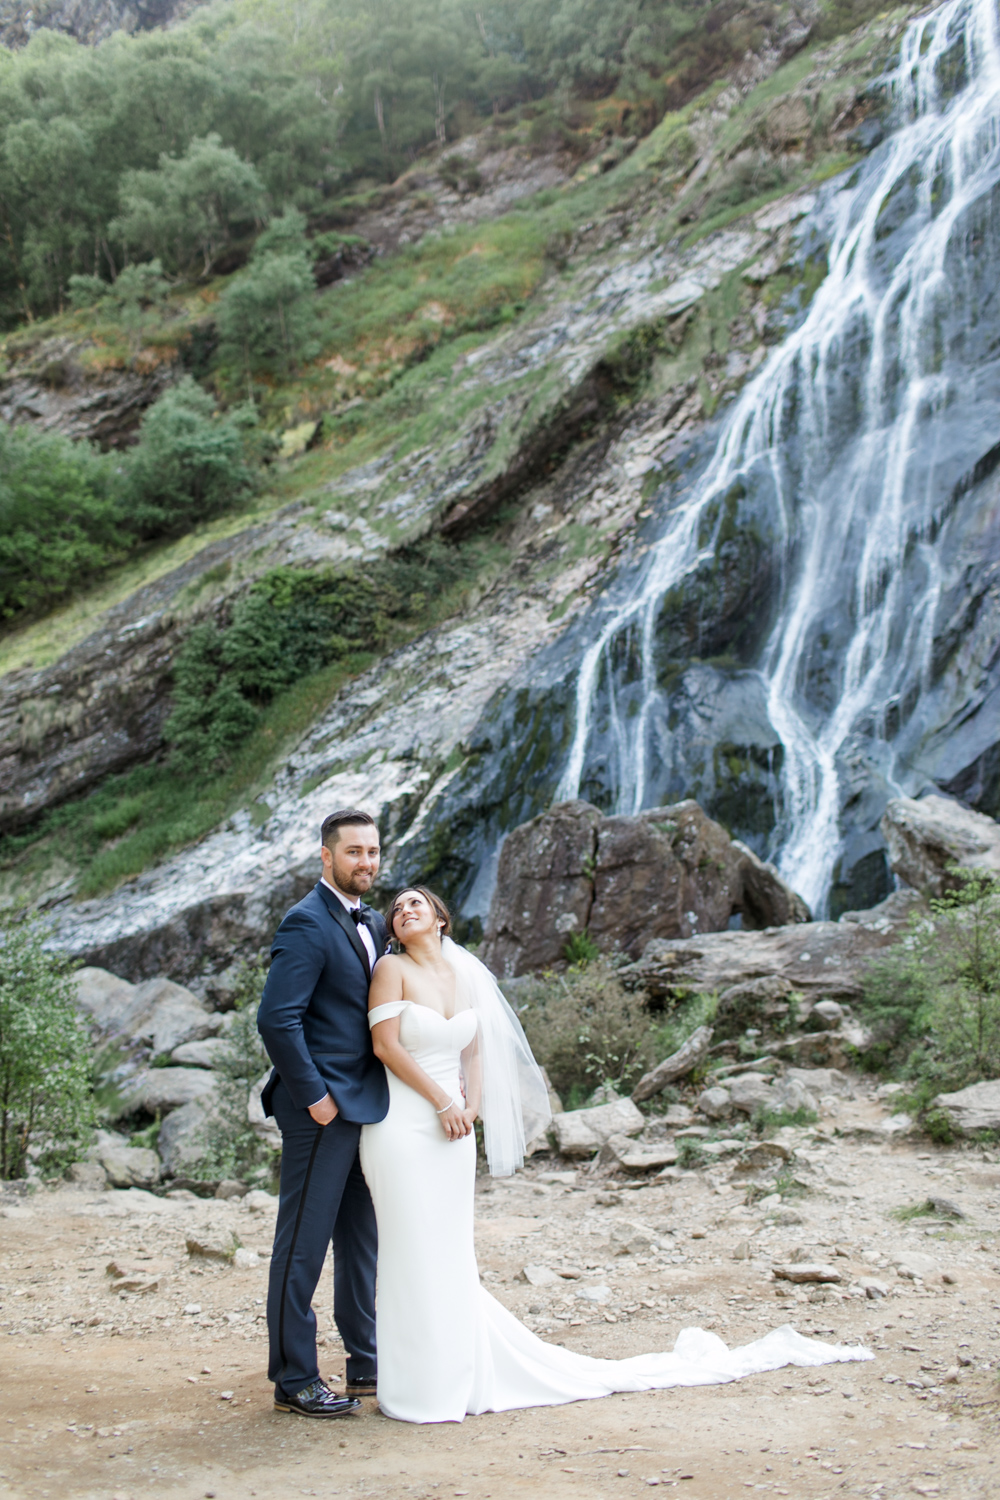 irish landscape for an american couple elopement their wedding gowns are elegant and simple featuring black tie style